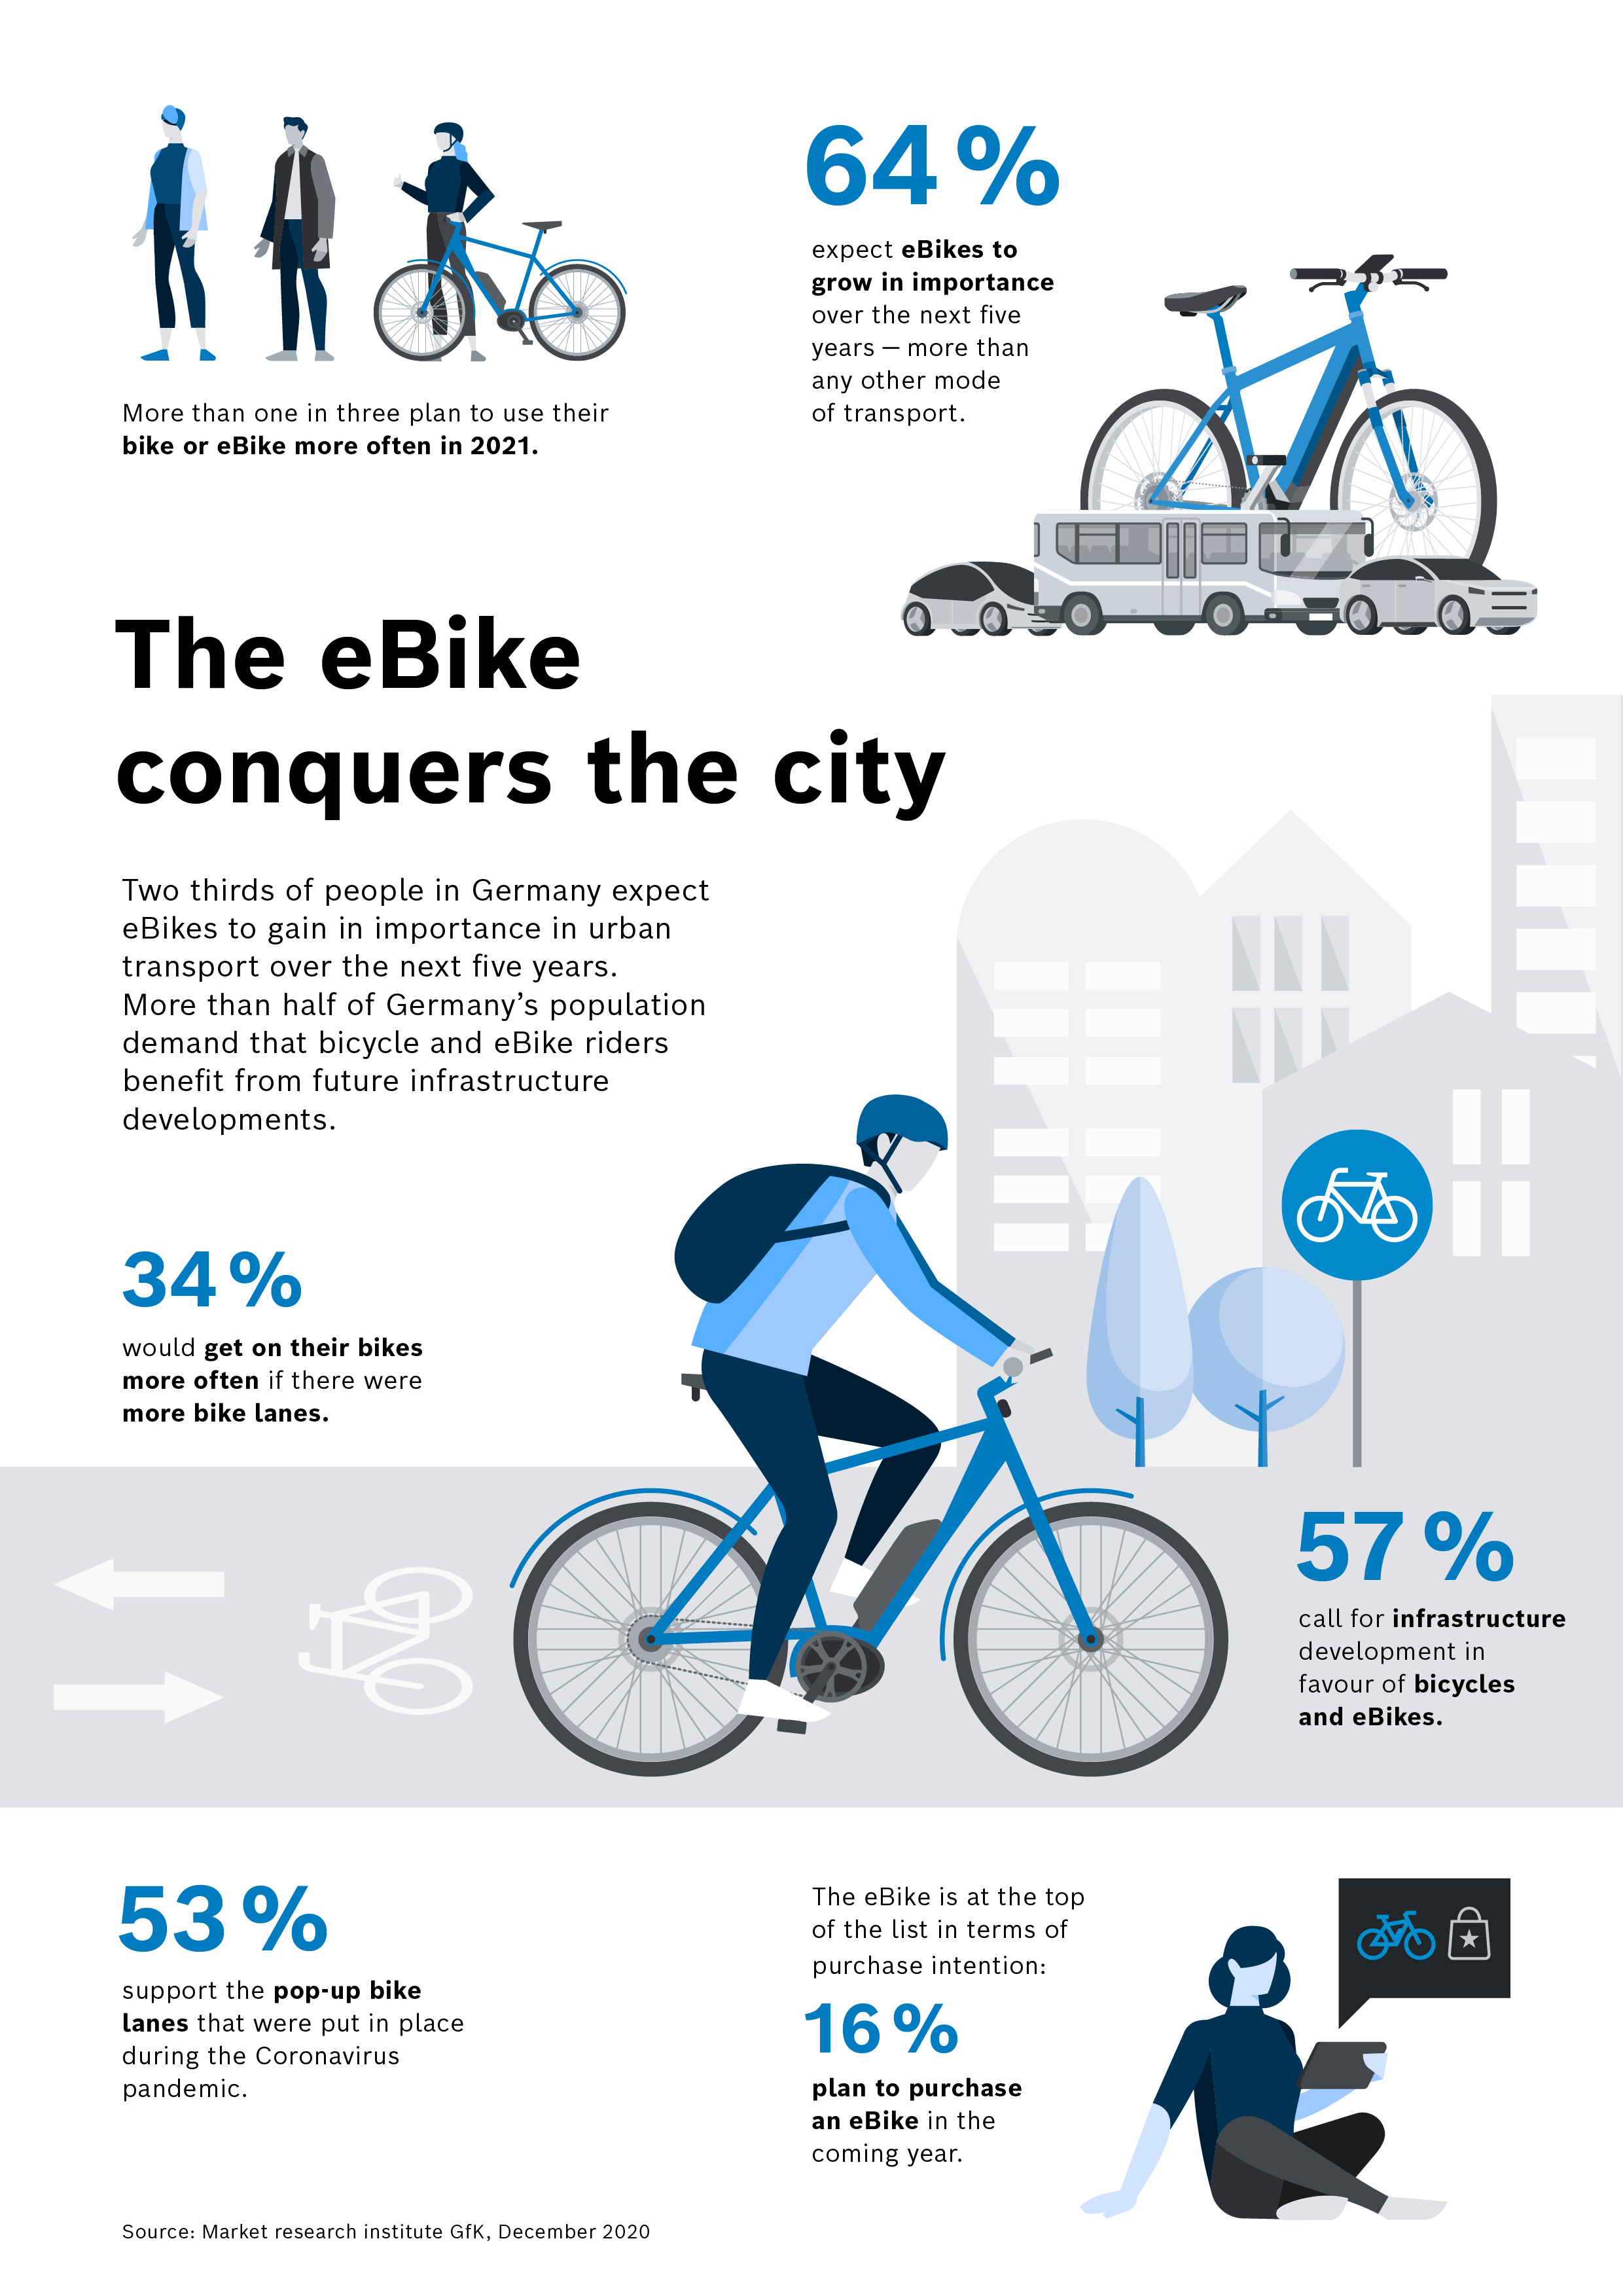 The eBike conquers the city